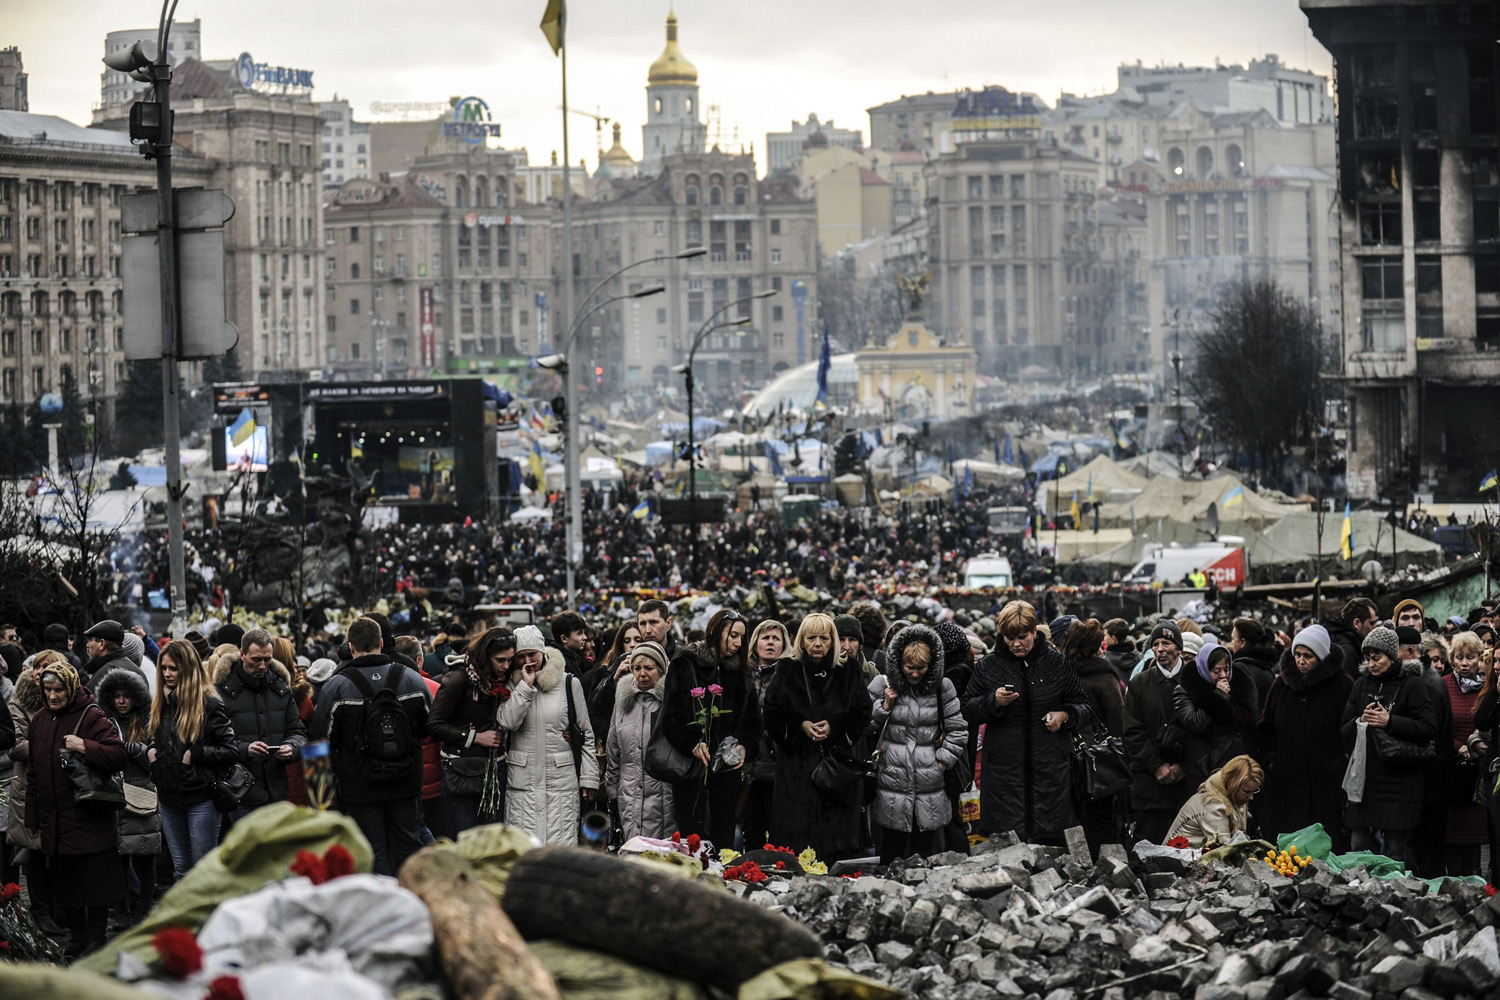 People mourn on Kiev's Independence Square, Feb. 25, 2014.